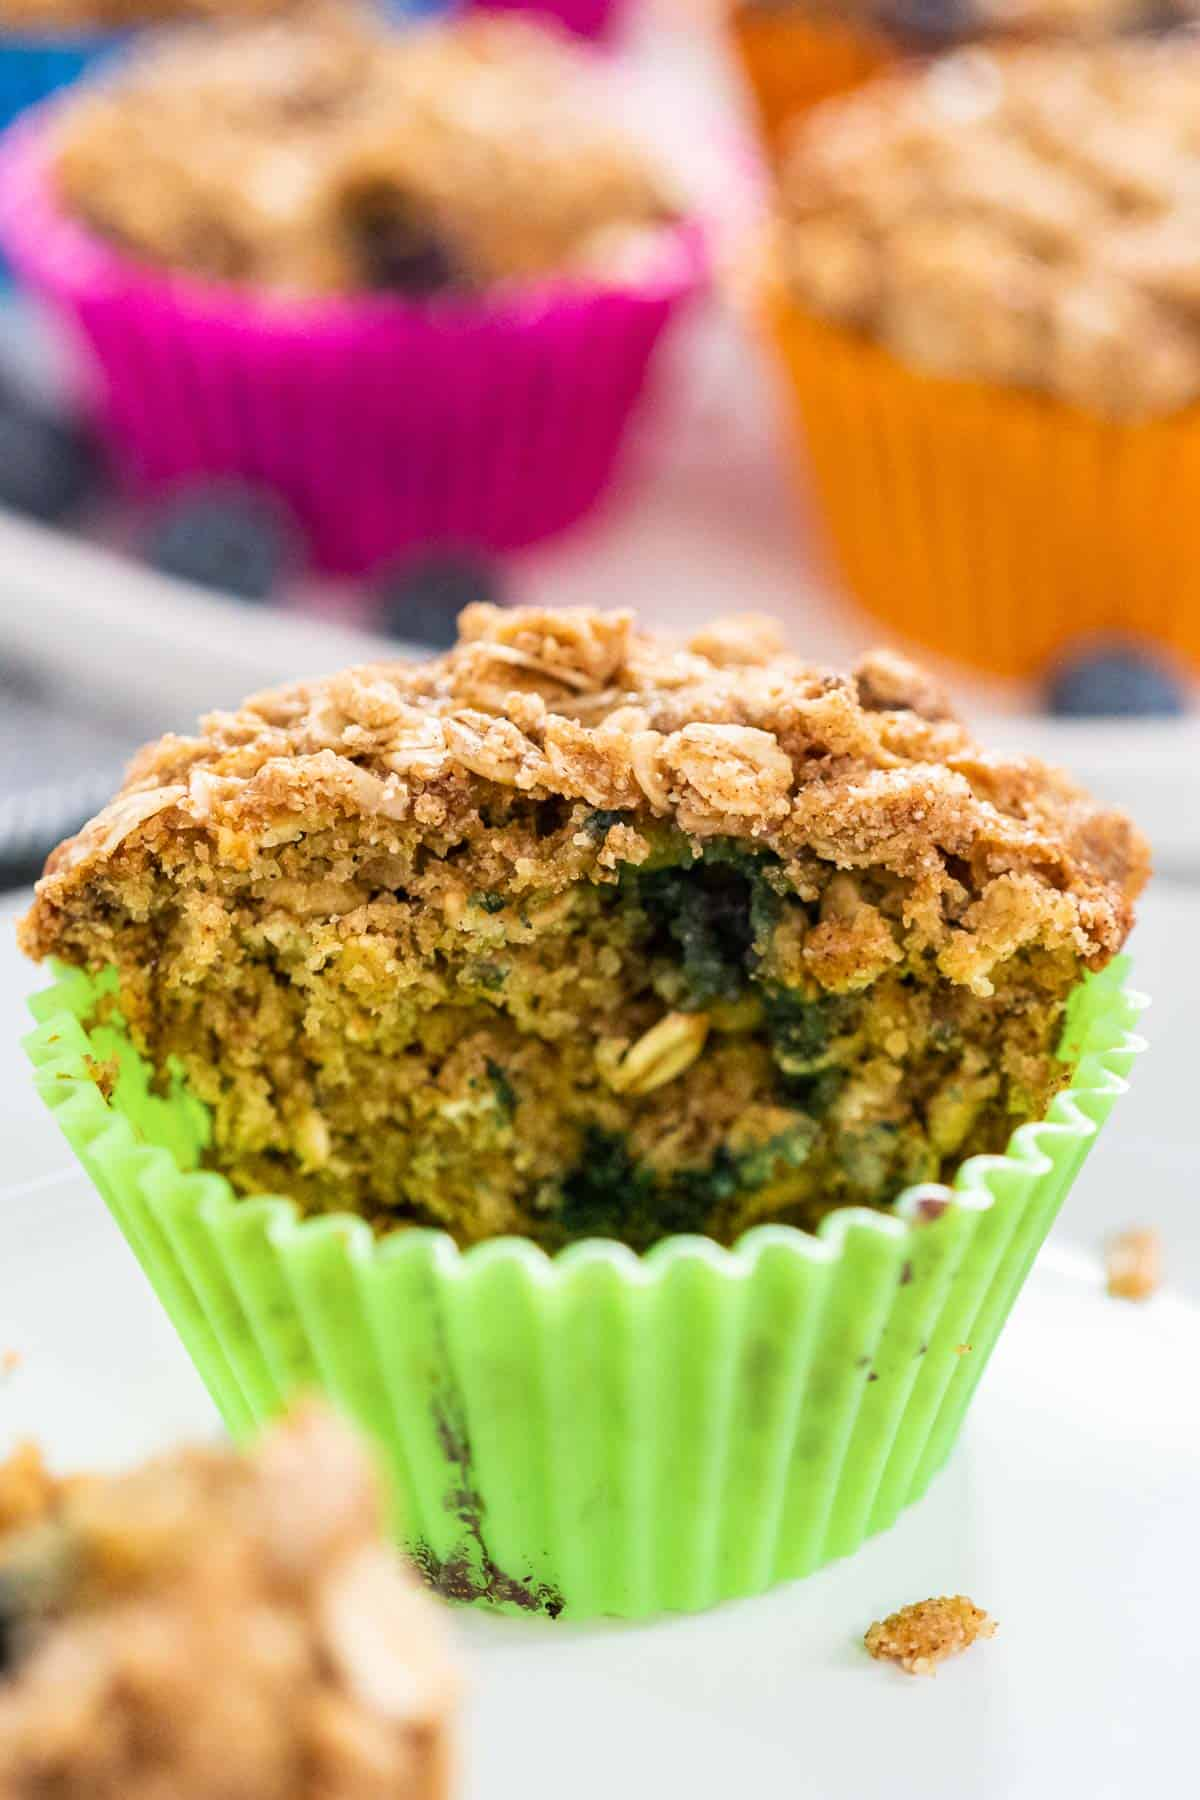 Blueberry oat muffin in a green liner.